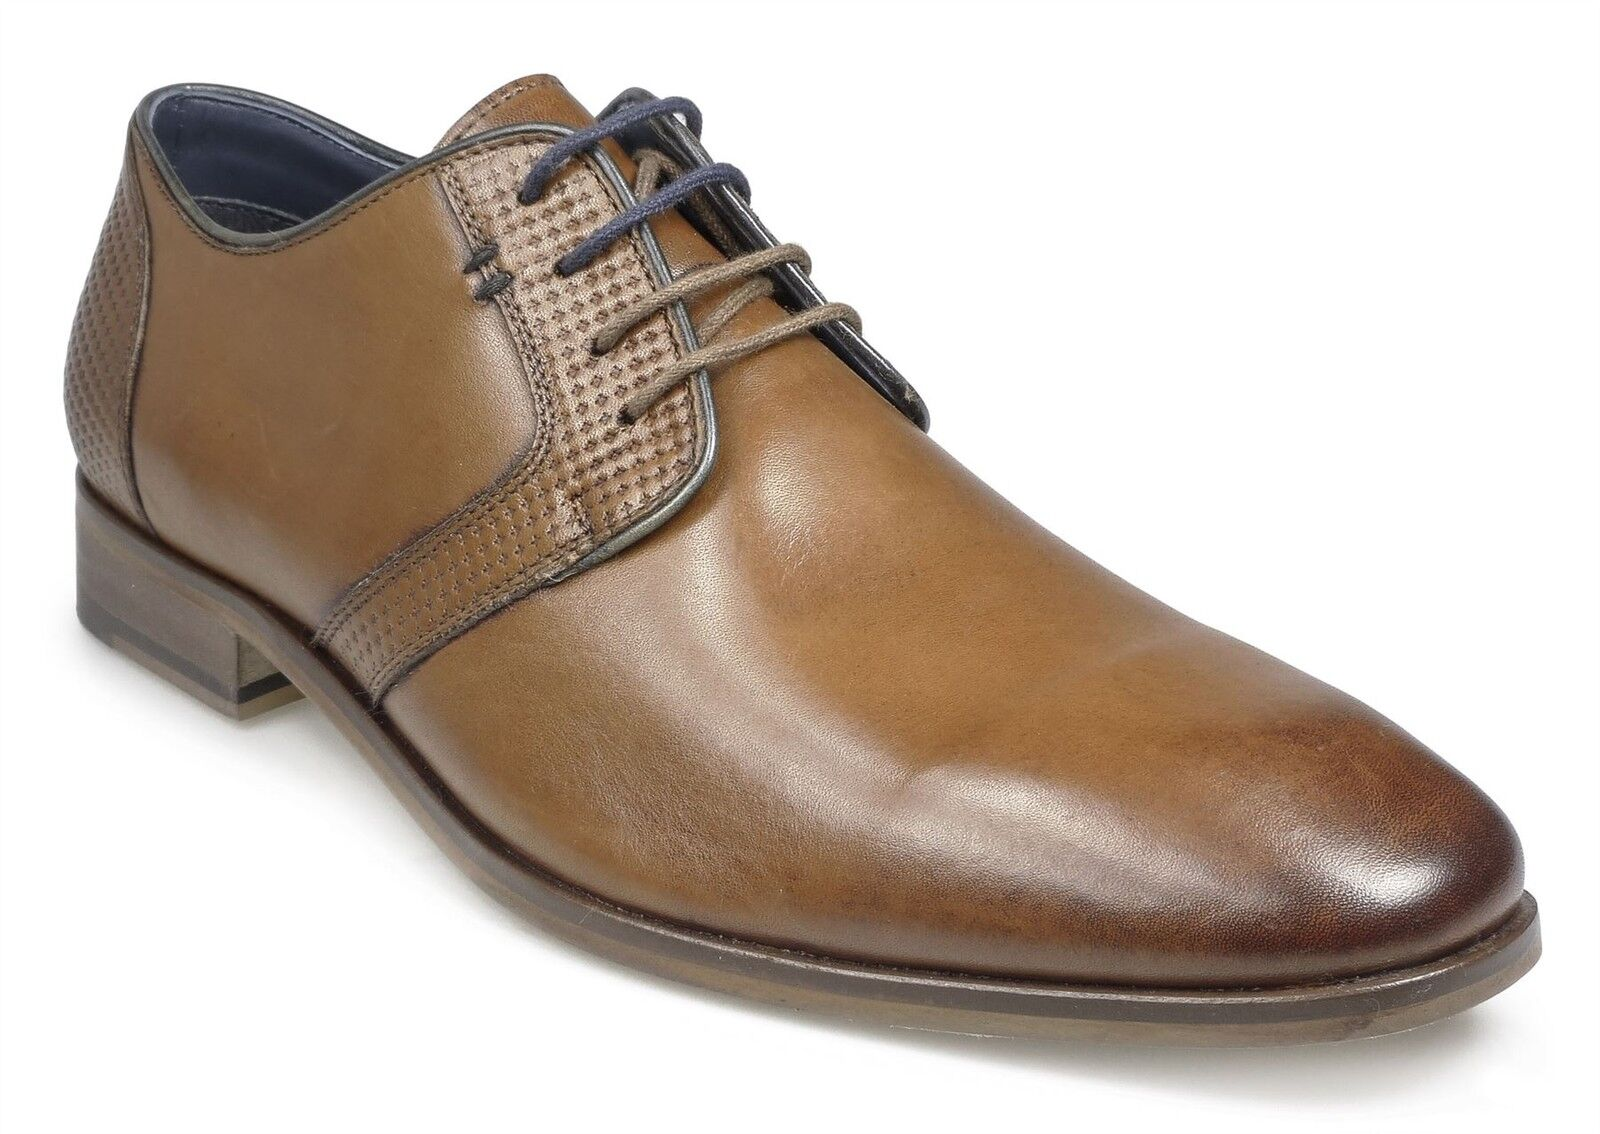 Paul O'Donnell Mens Lace Up Formal schuhe - Tampa in Cognac in Größe UK6 to UK15